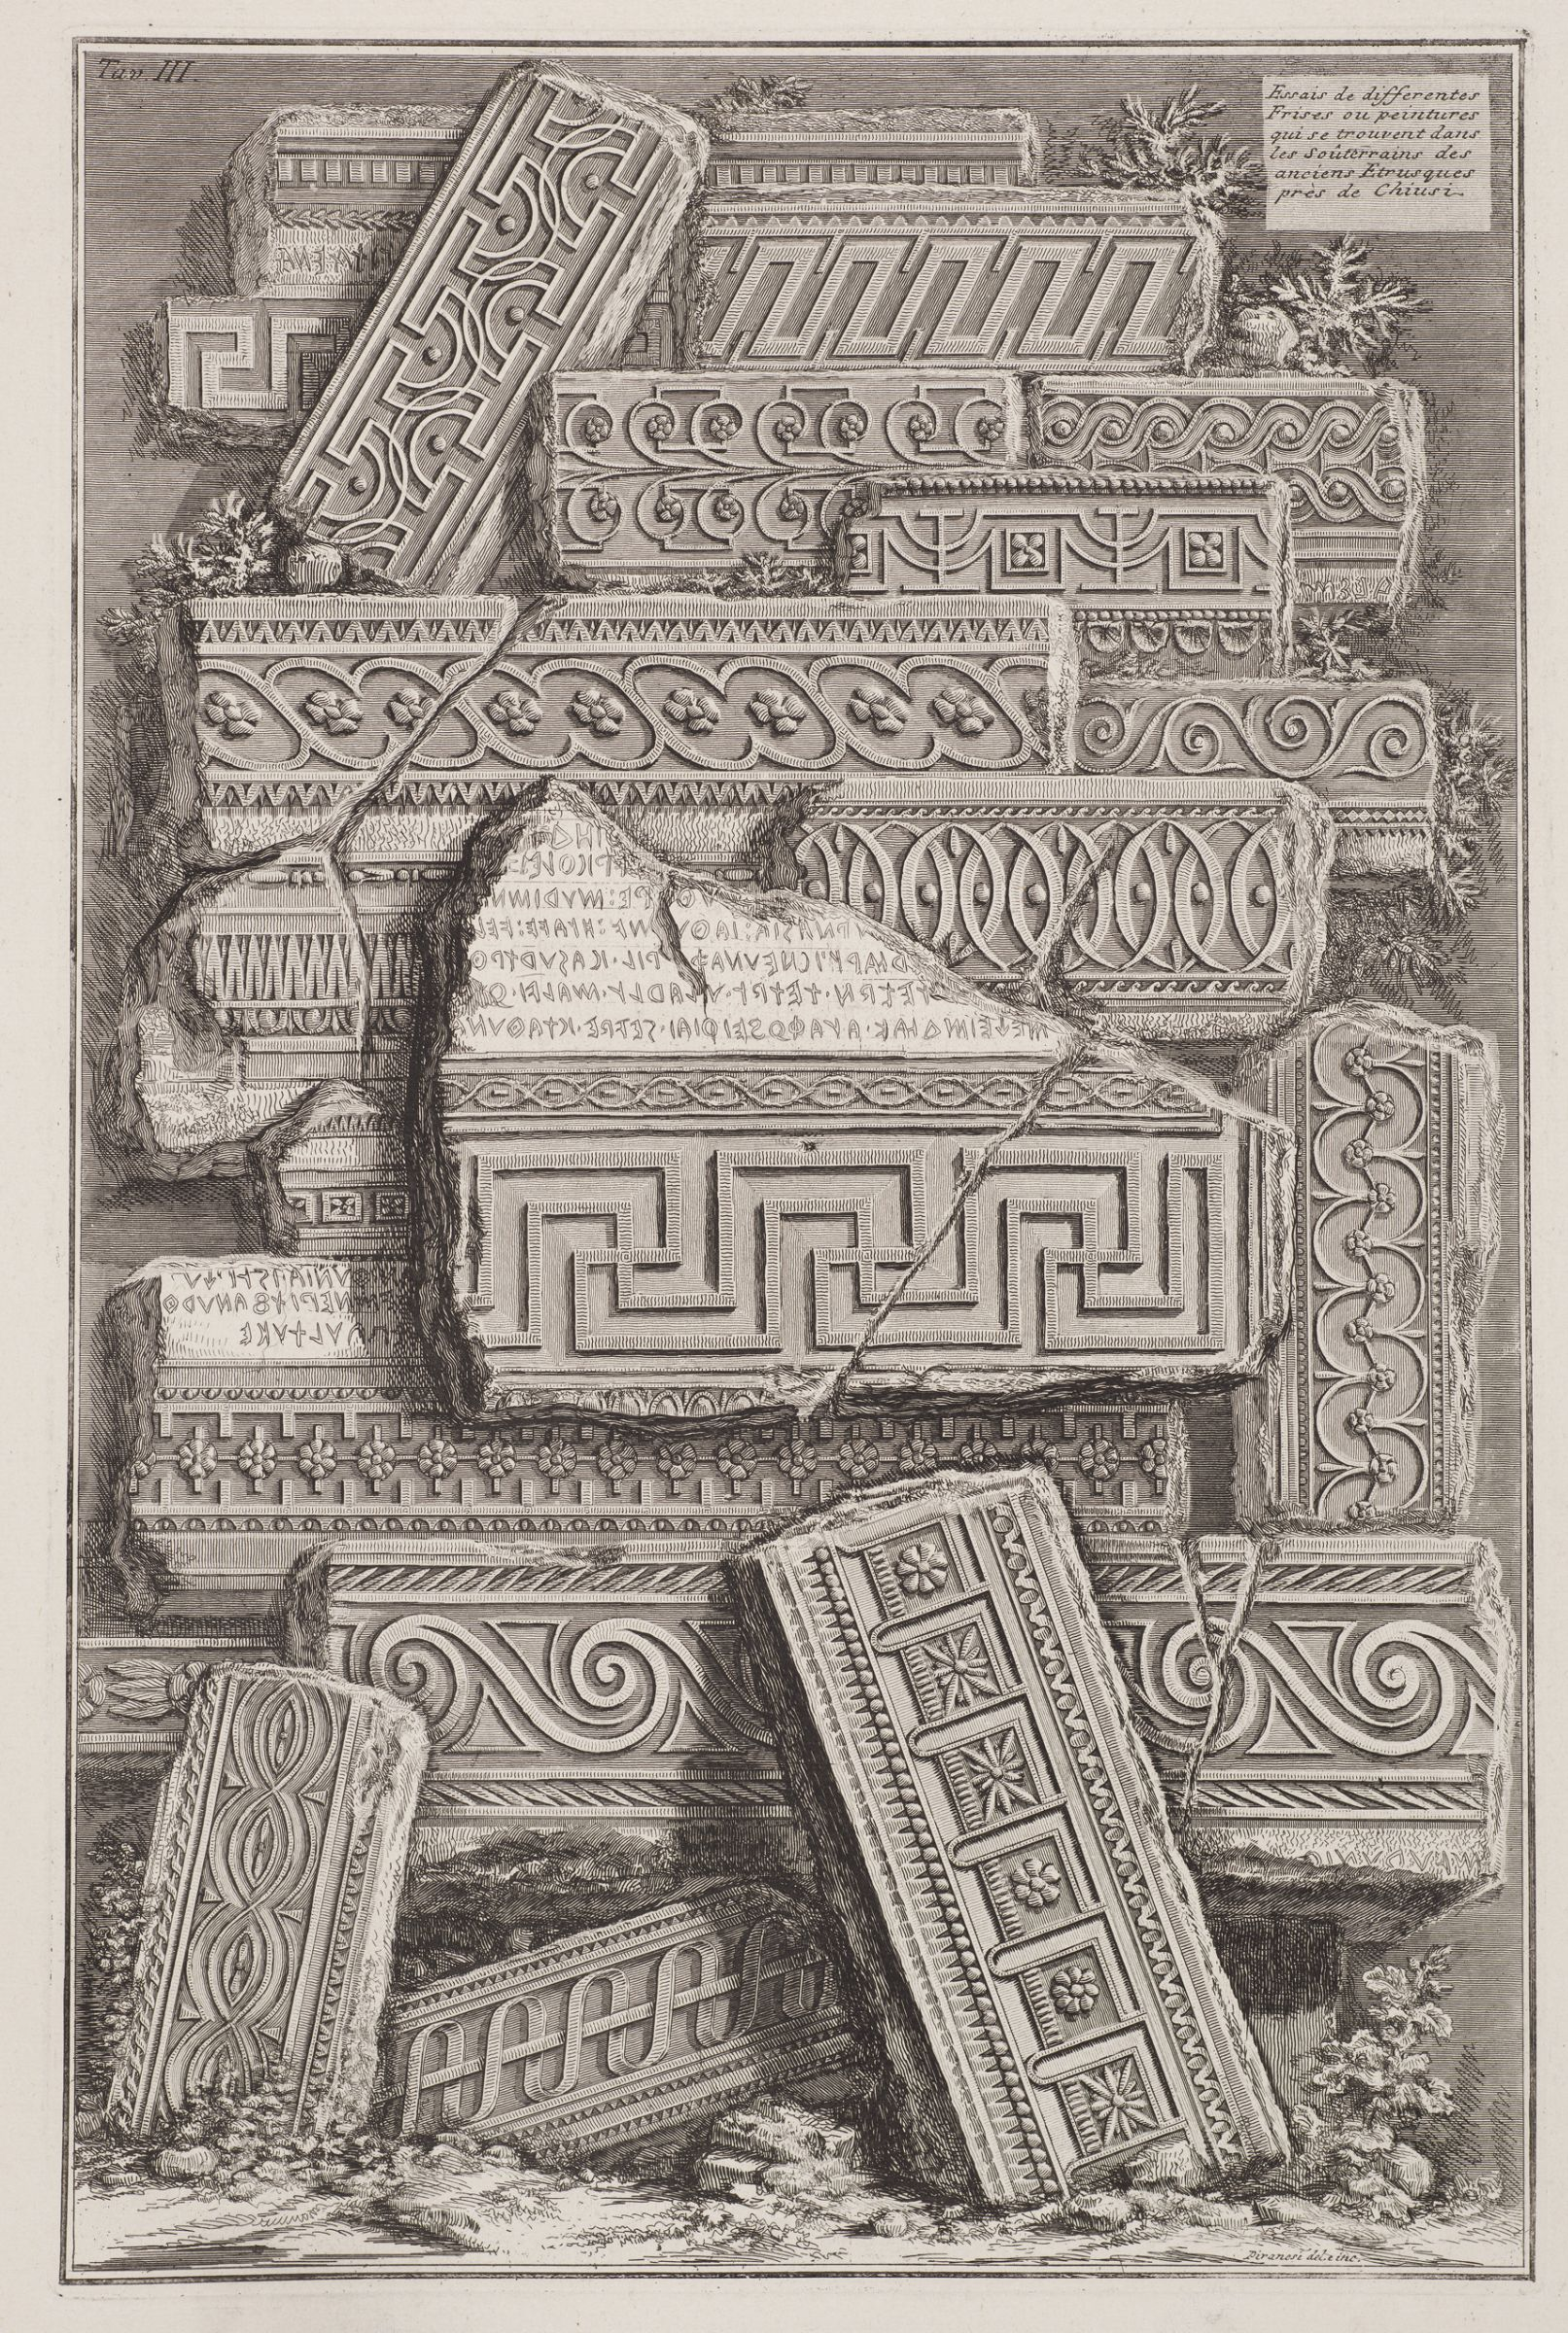 In Piranesi's Studies of Etruscan Friezes at Chiusi, the Etruscan letters are accurately represented, but in nonsensical combinations. Etruscan, a non–Indo-European language, was read from right to left.